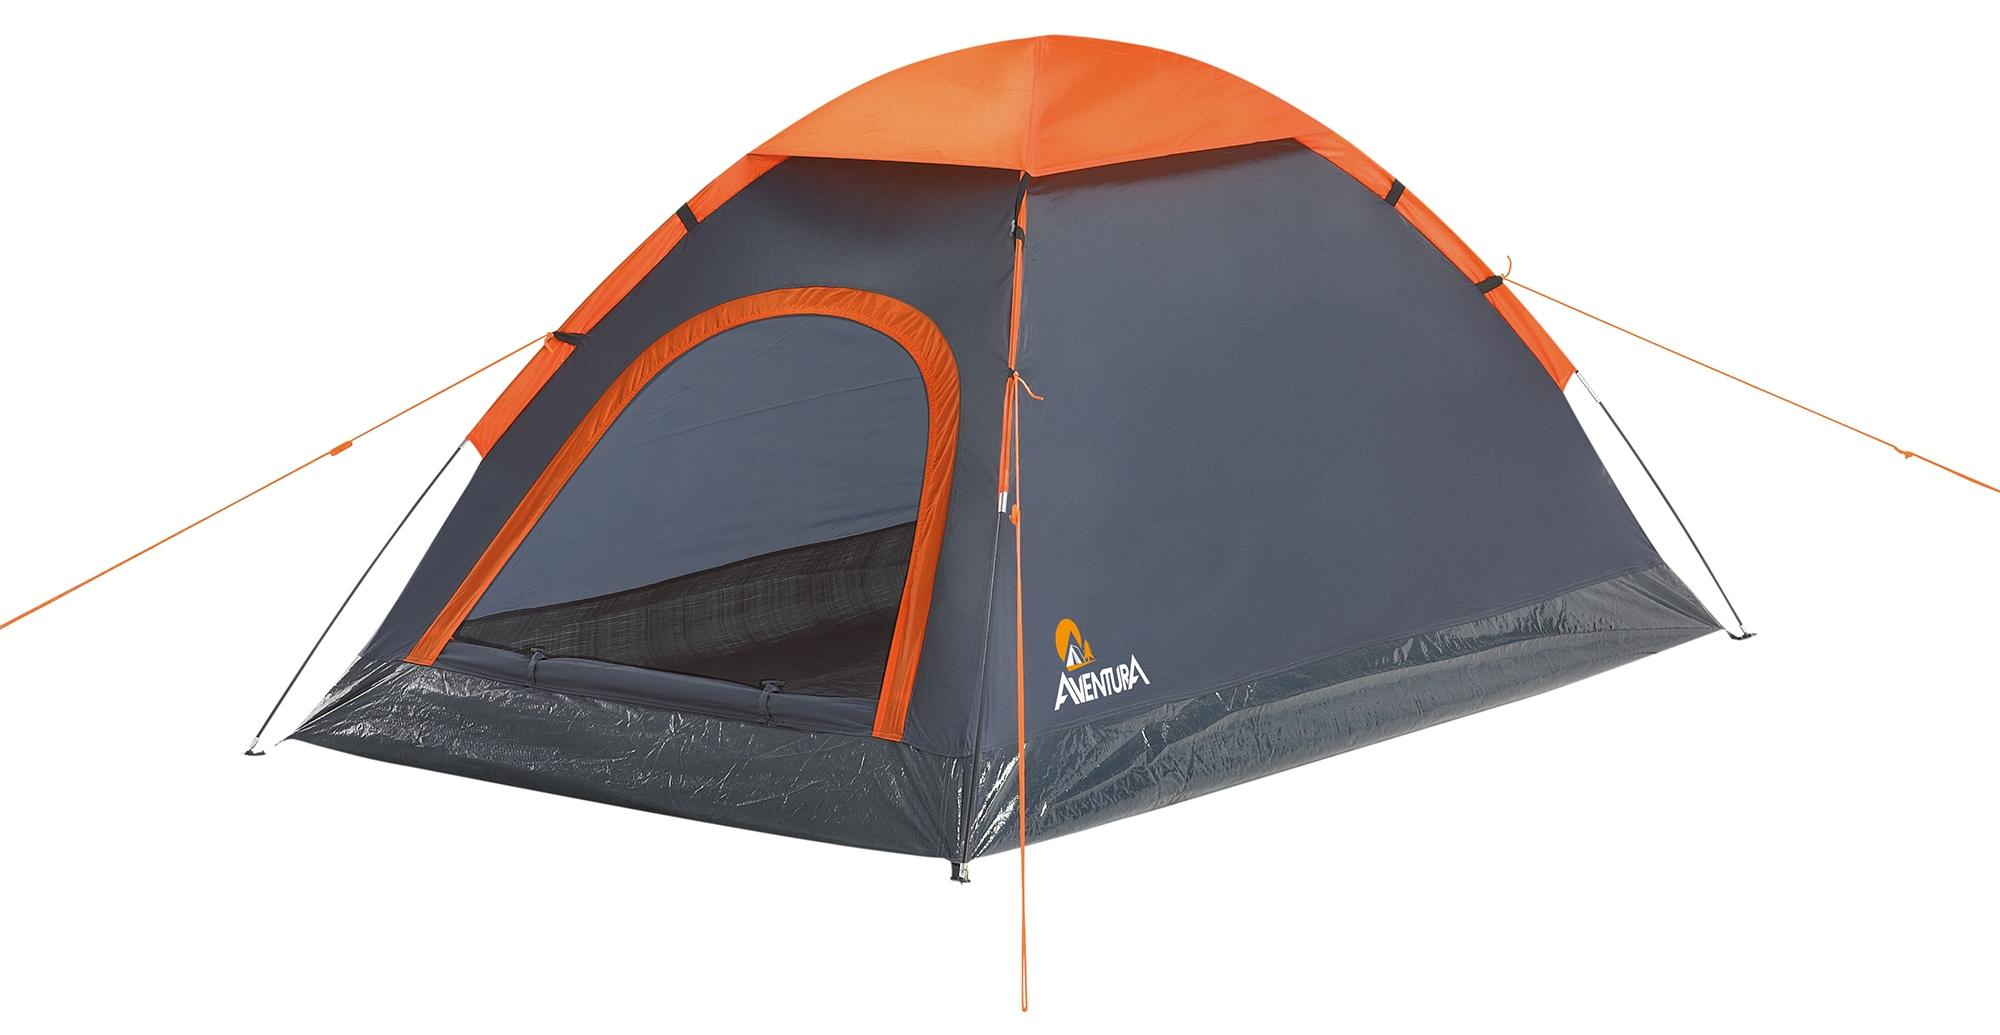 Aventura 2 Man Tent - 1 Bedroom 1 Door Single Skin Dome Style in Grey u0026 Orange 5051762339049 | eBay  sc 1 st  eBay & Aventura 2 Man Tent - 1 Bedroom 1 Door Single Skin Dome Style in ...